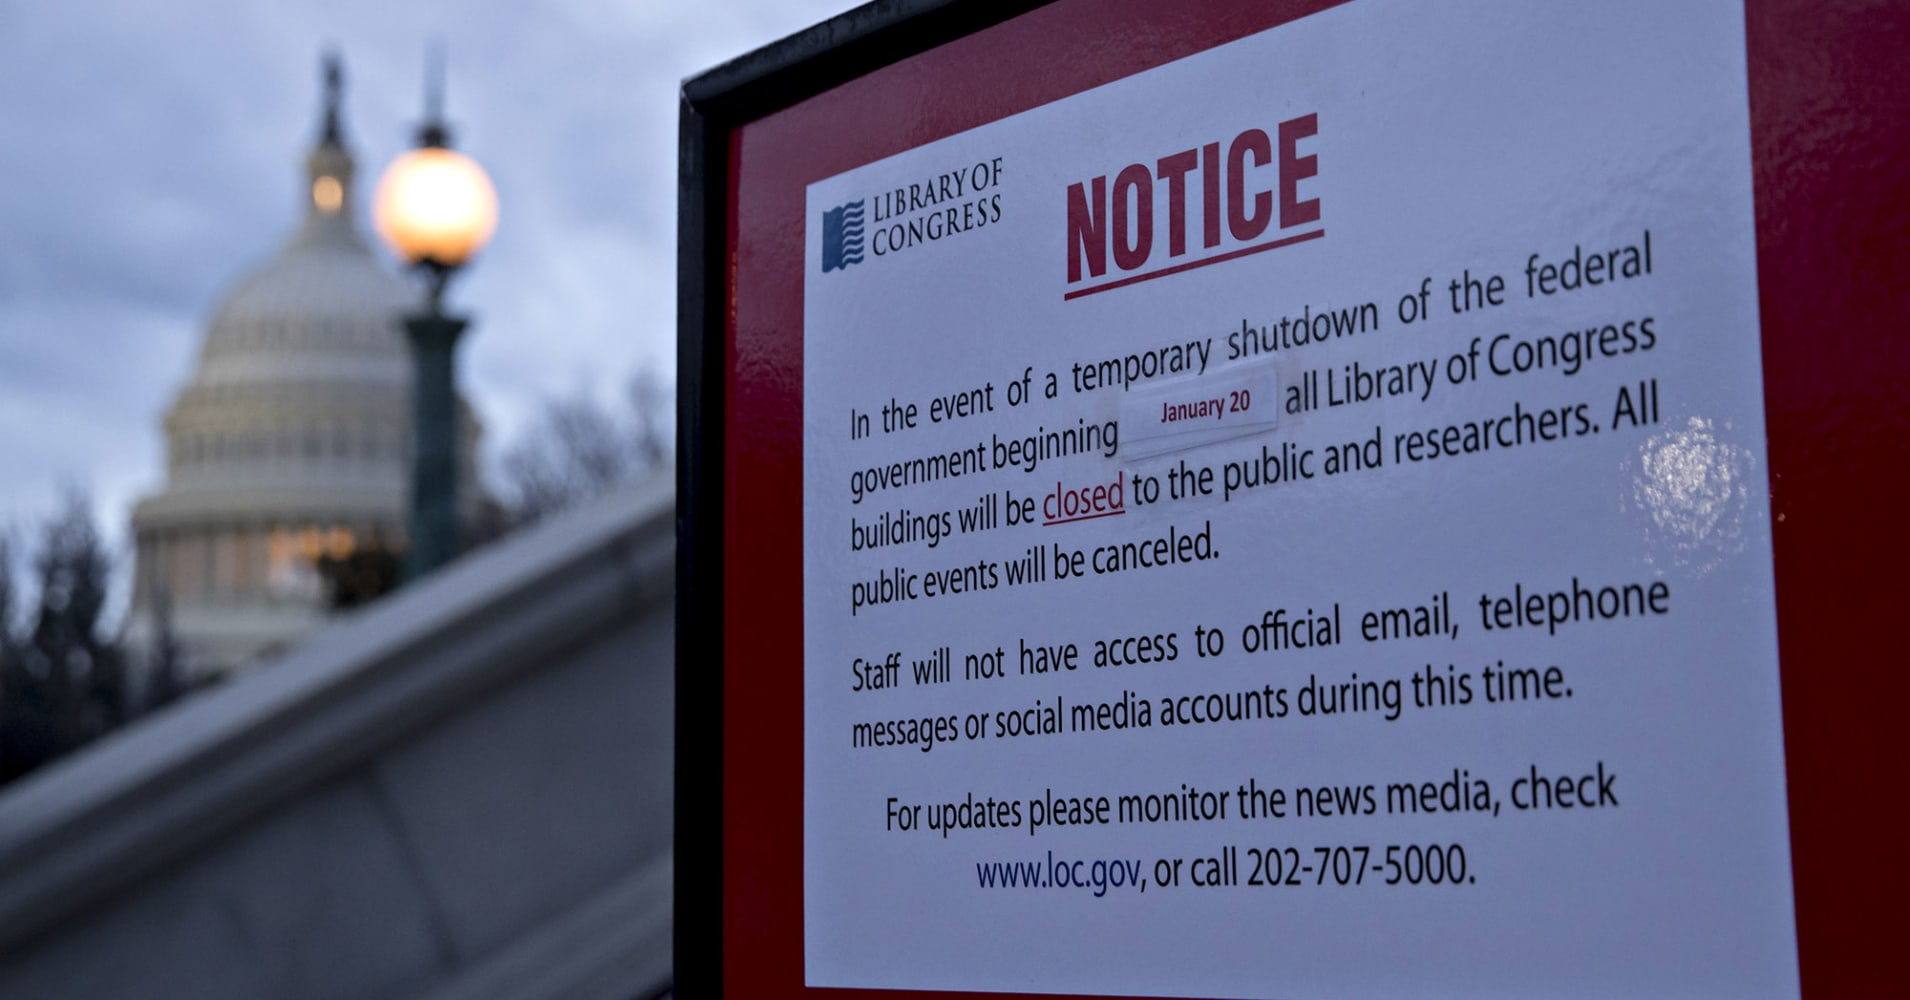 The U.S. Capitol stands past a temporary shutdown sign outside the Library of Congress in Washington, D.C., U.S., on Sunday, Jan. 21, 2018.